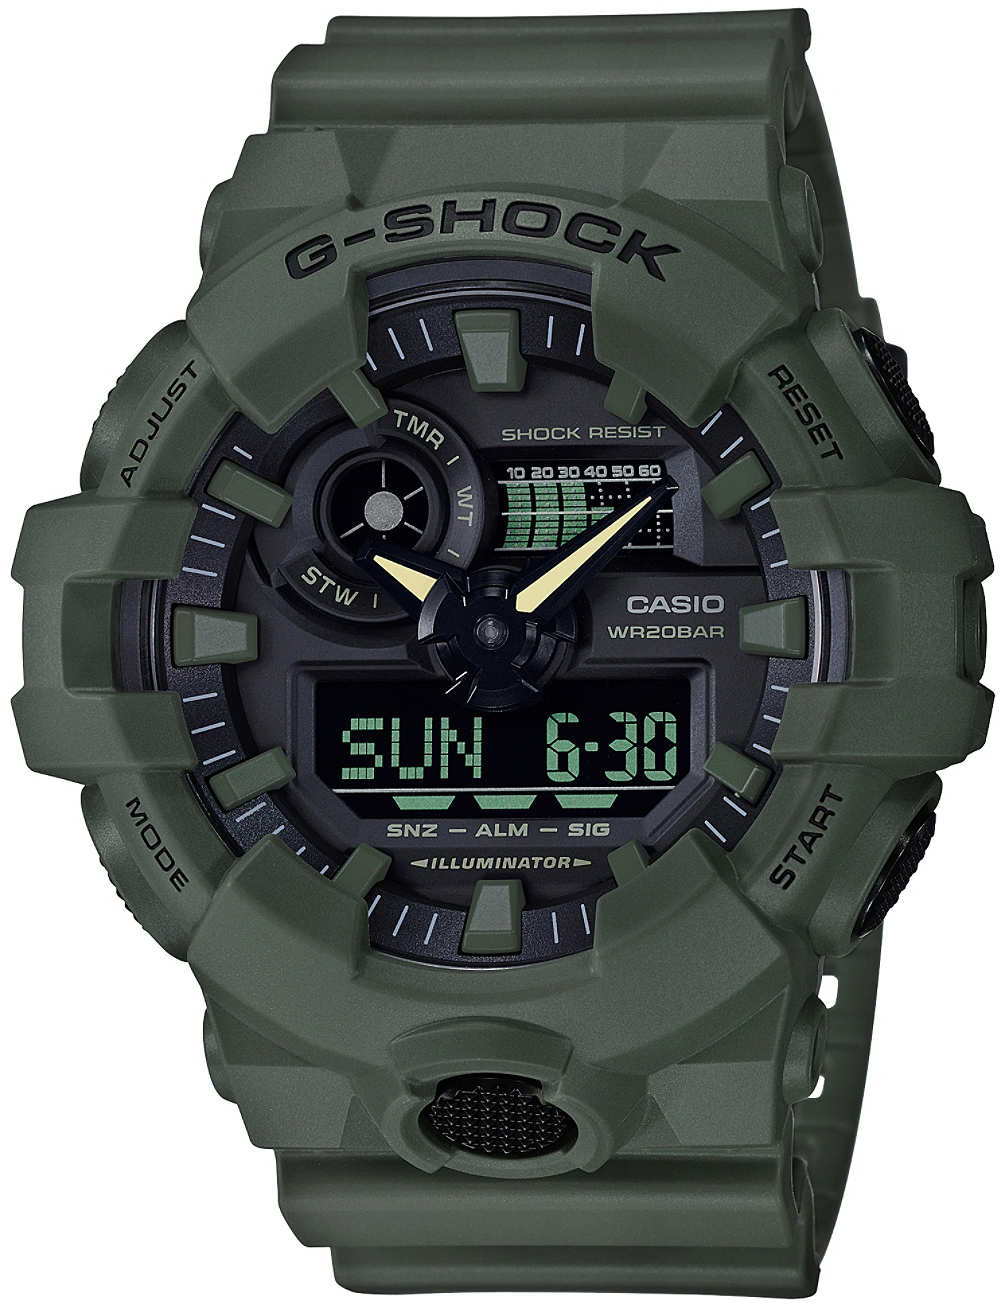 купить Casio G-shock GA-700UC-3A в интернет-магазине